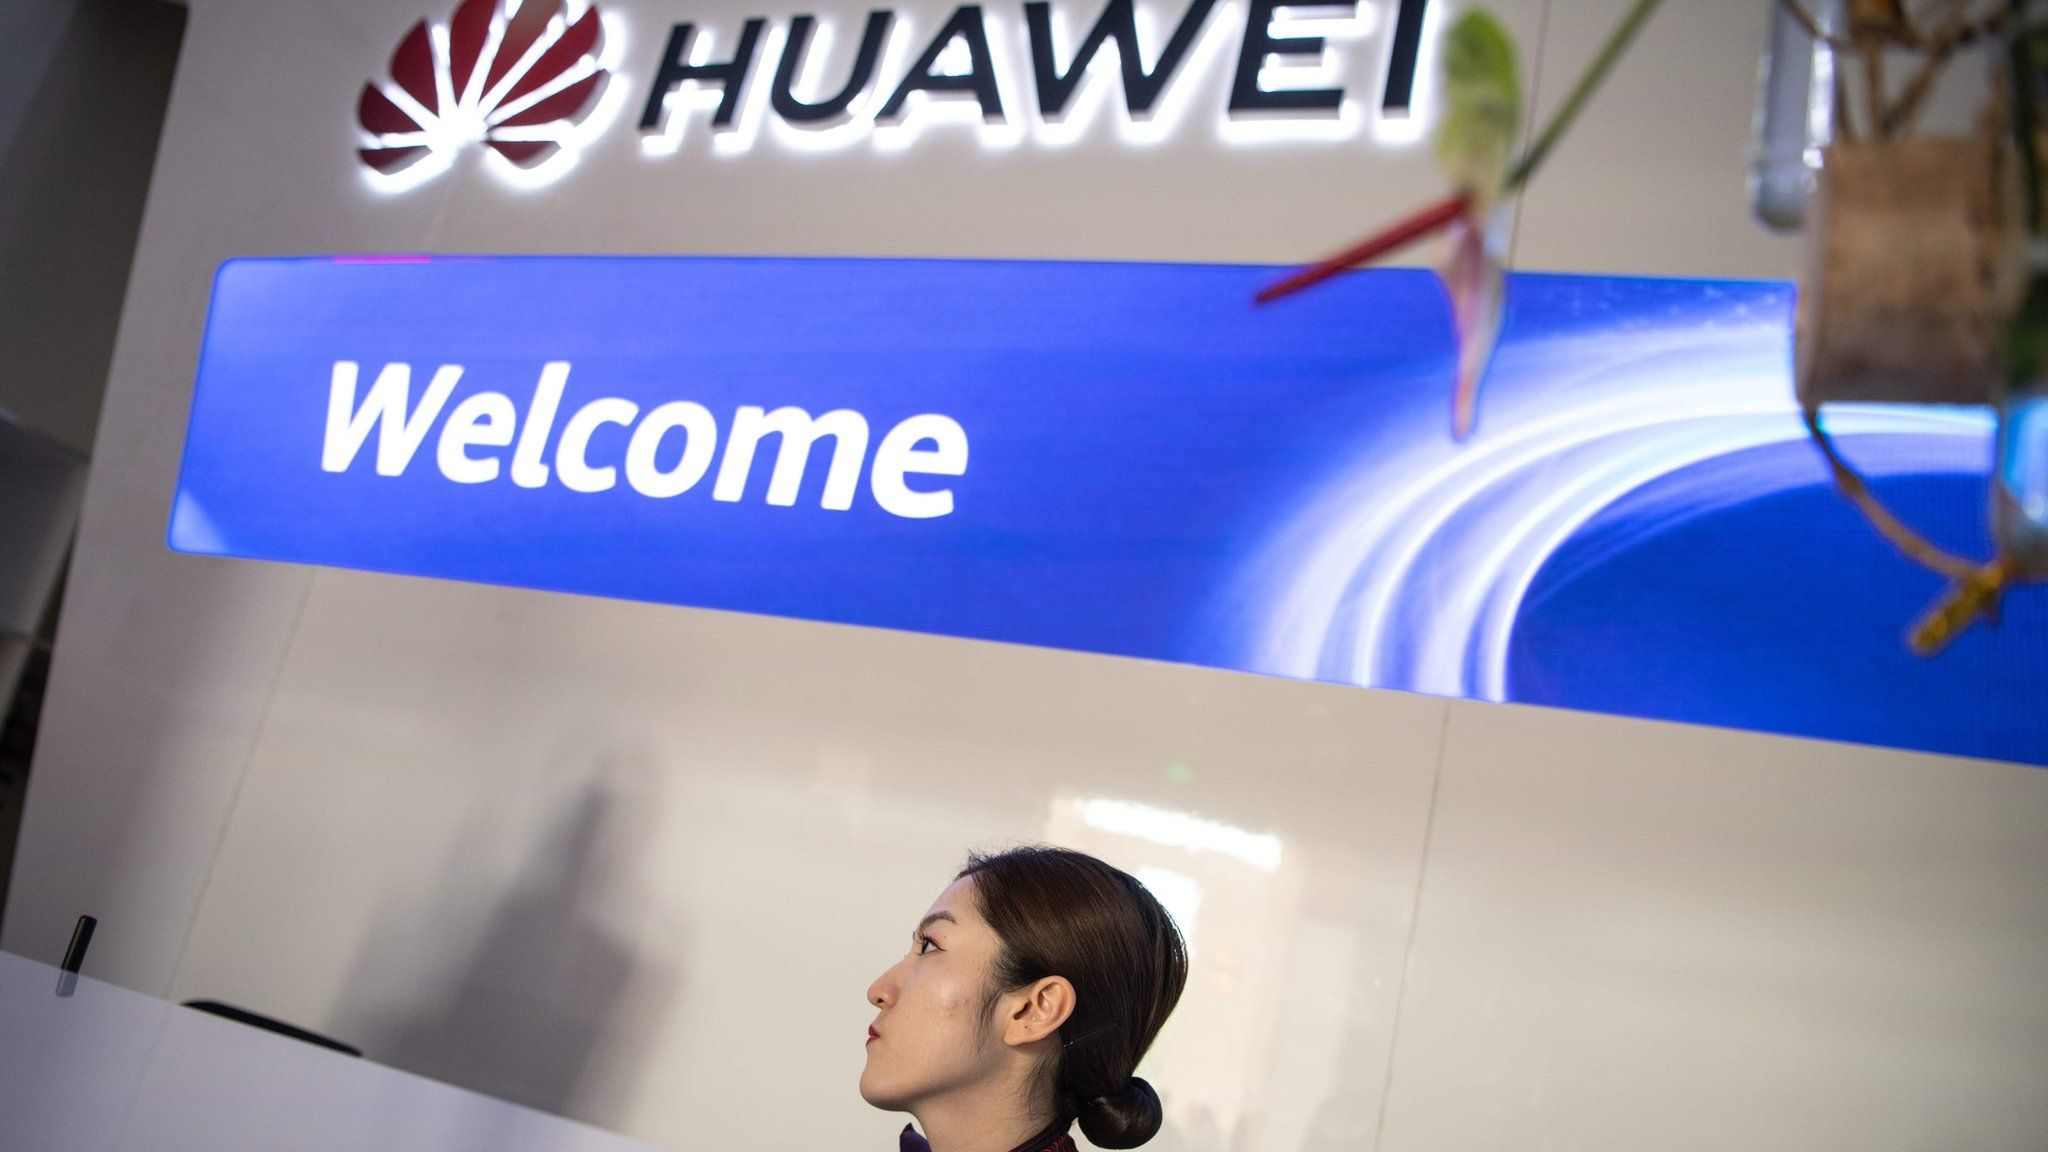 Huawei's use of Android restricted by Google - BBC News